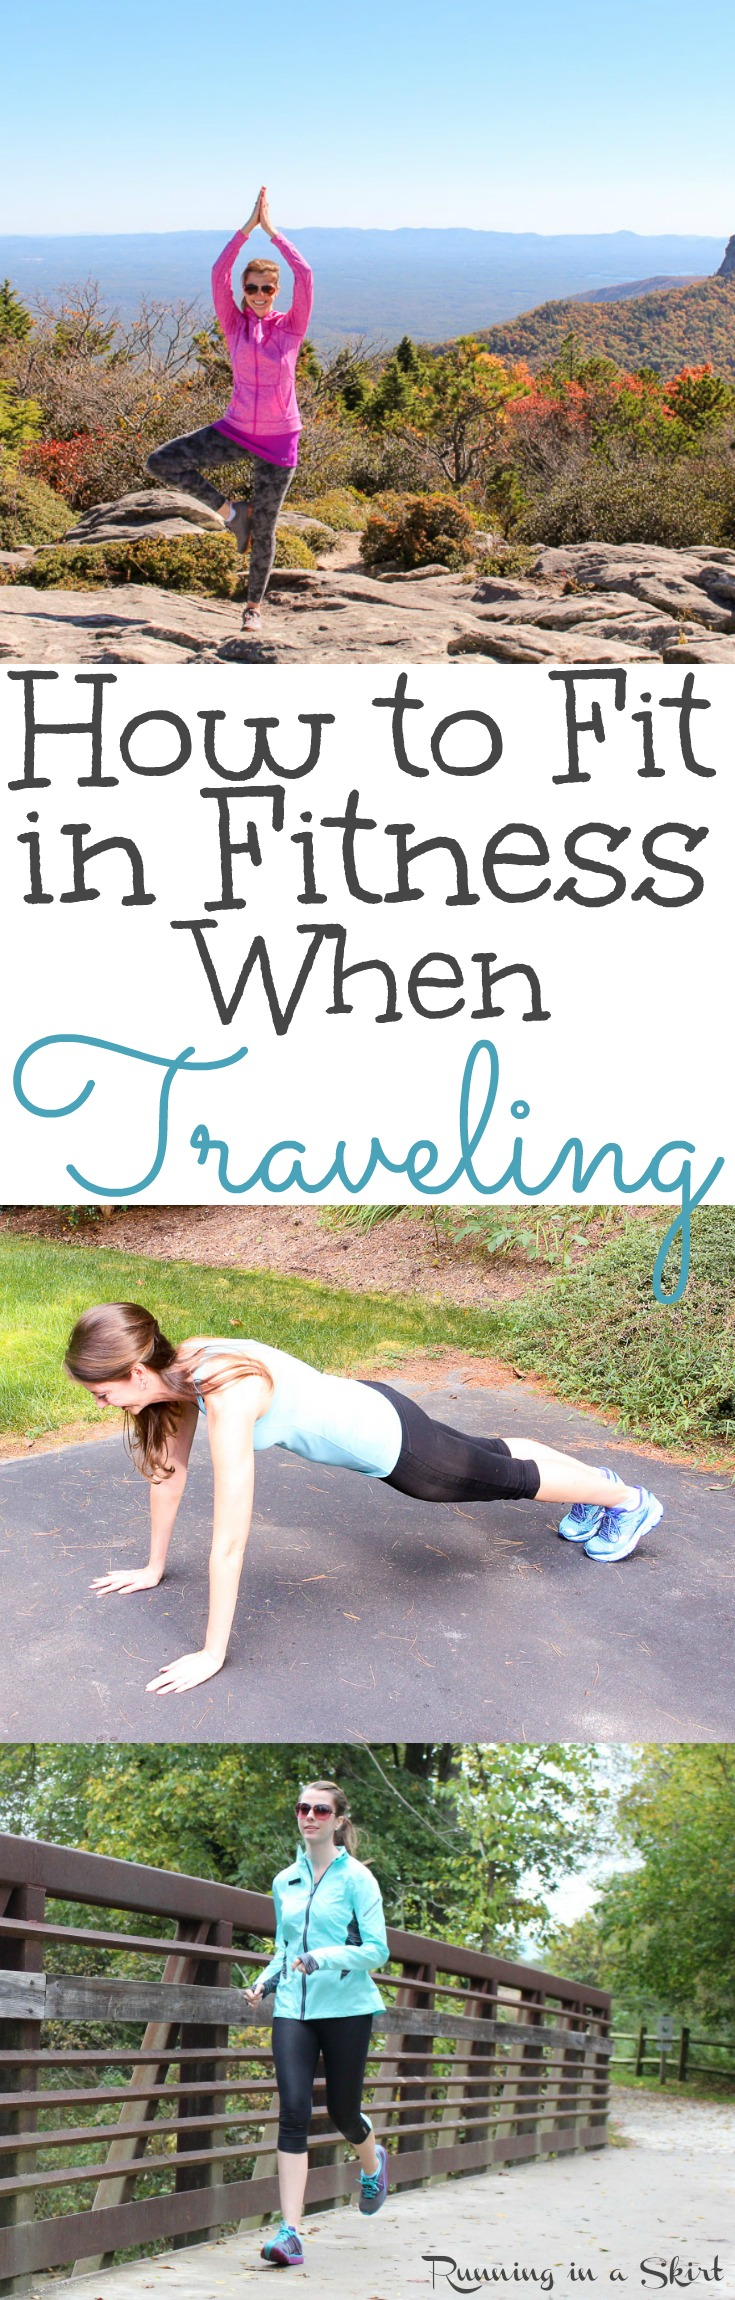 5 Ways to Fit in Fitness While Traveling on your next trip! / Running in a Skirt